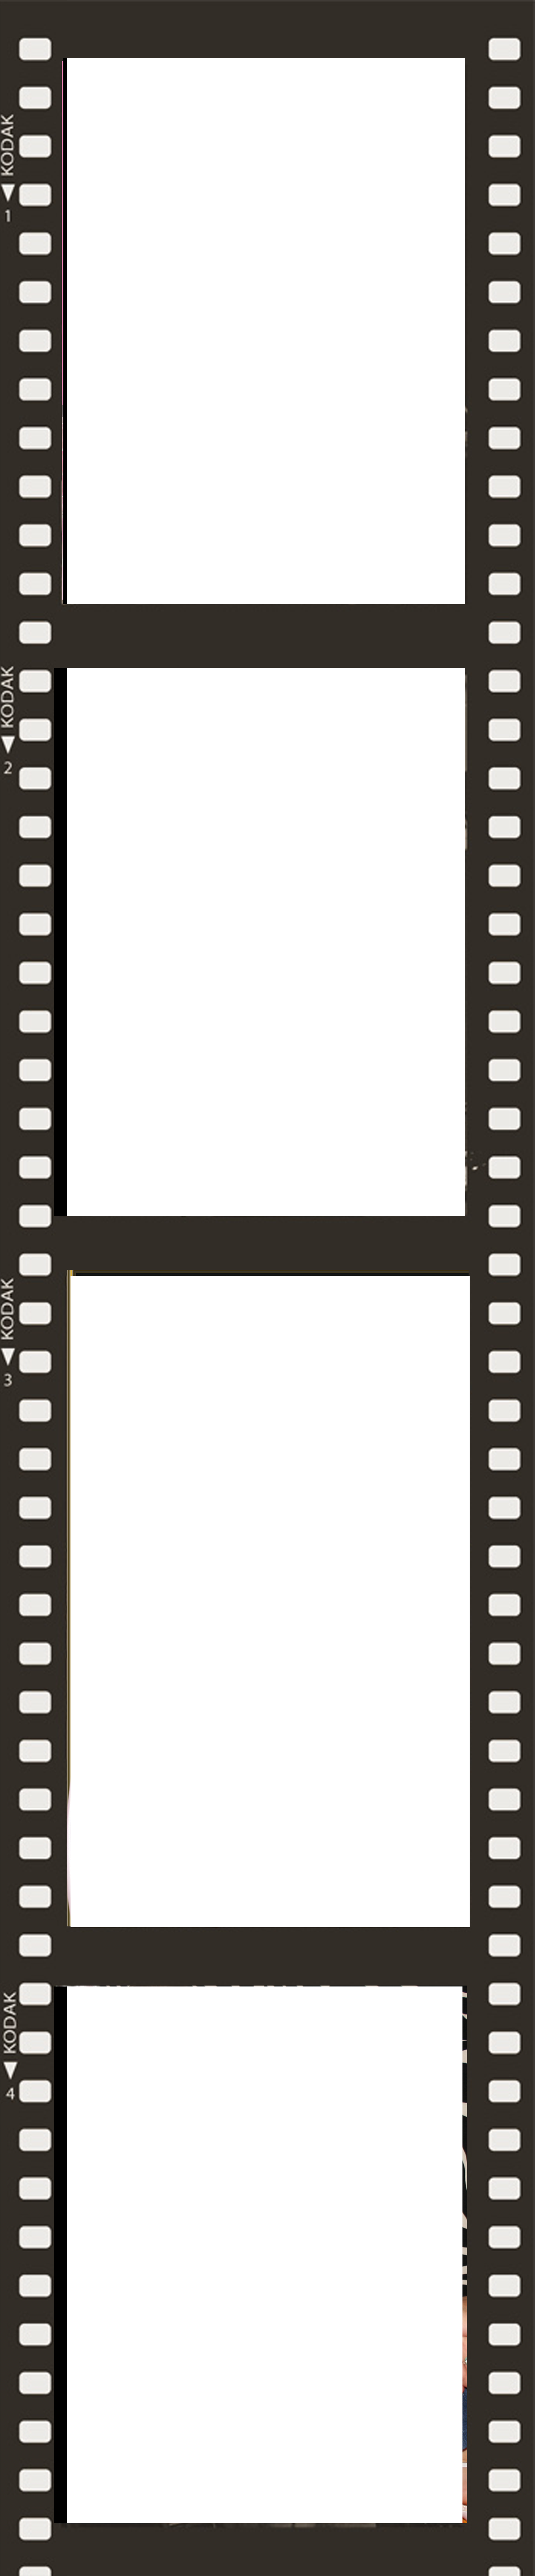 Film strip by volframia20